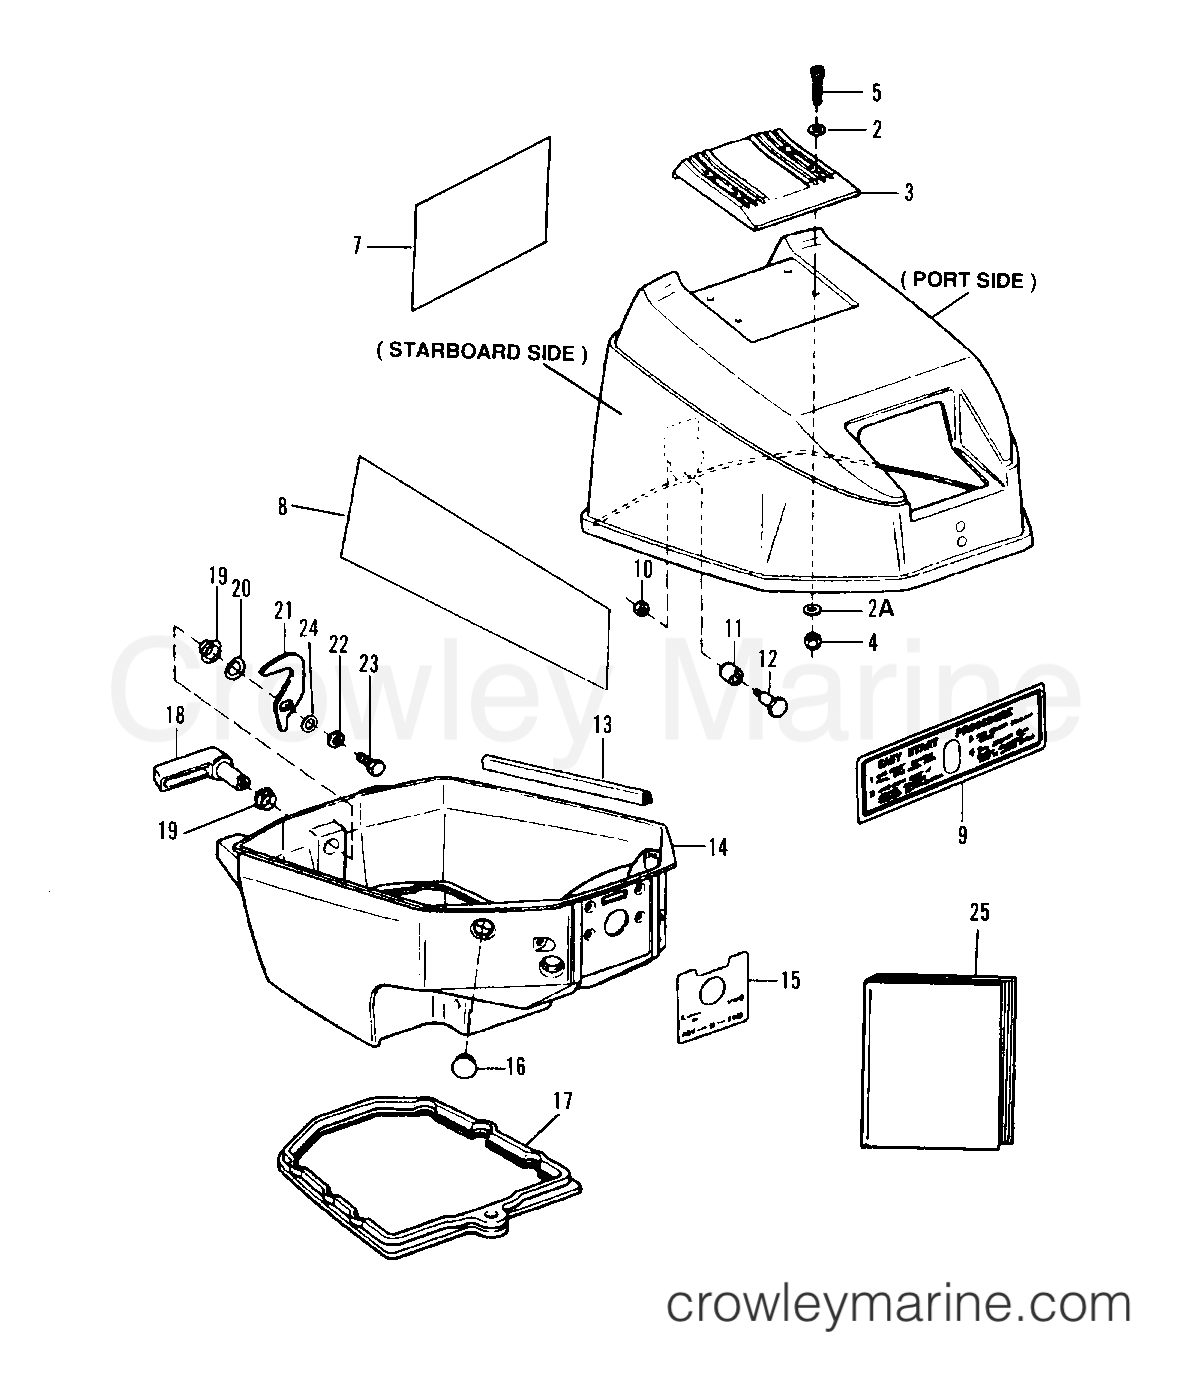 1993.5 Sears Outboard 9.9 - 225.581996 - TOP AND BOTTOM COWL